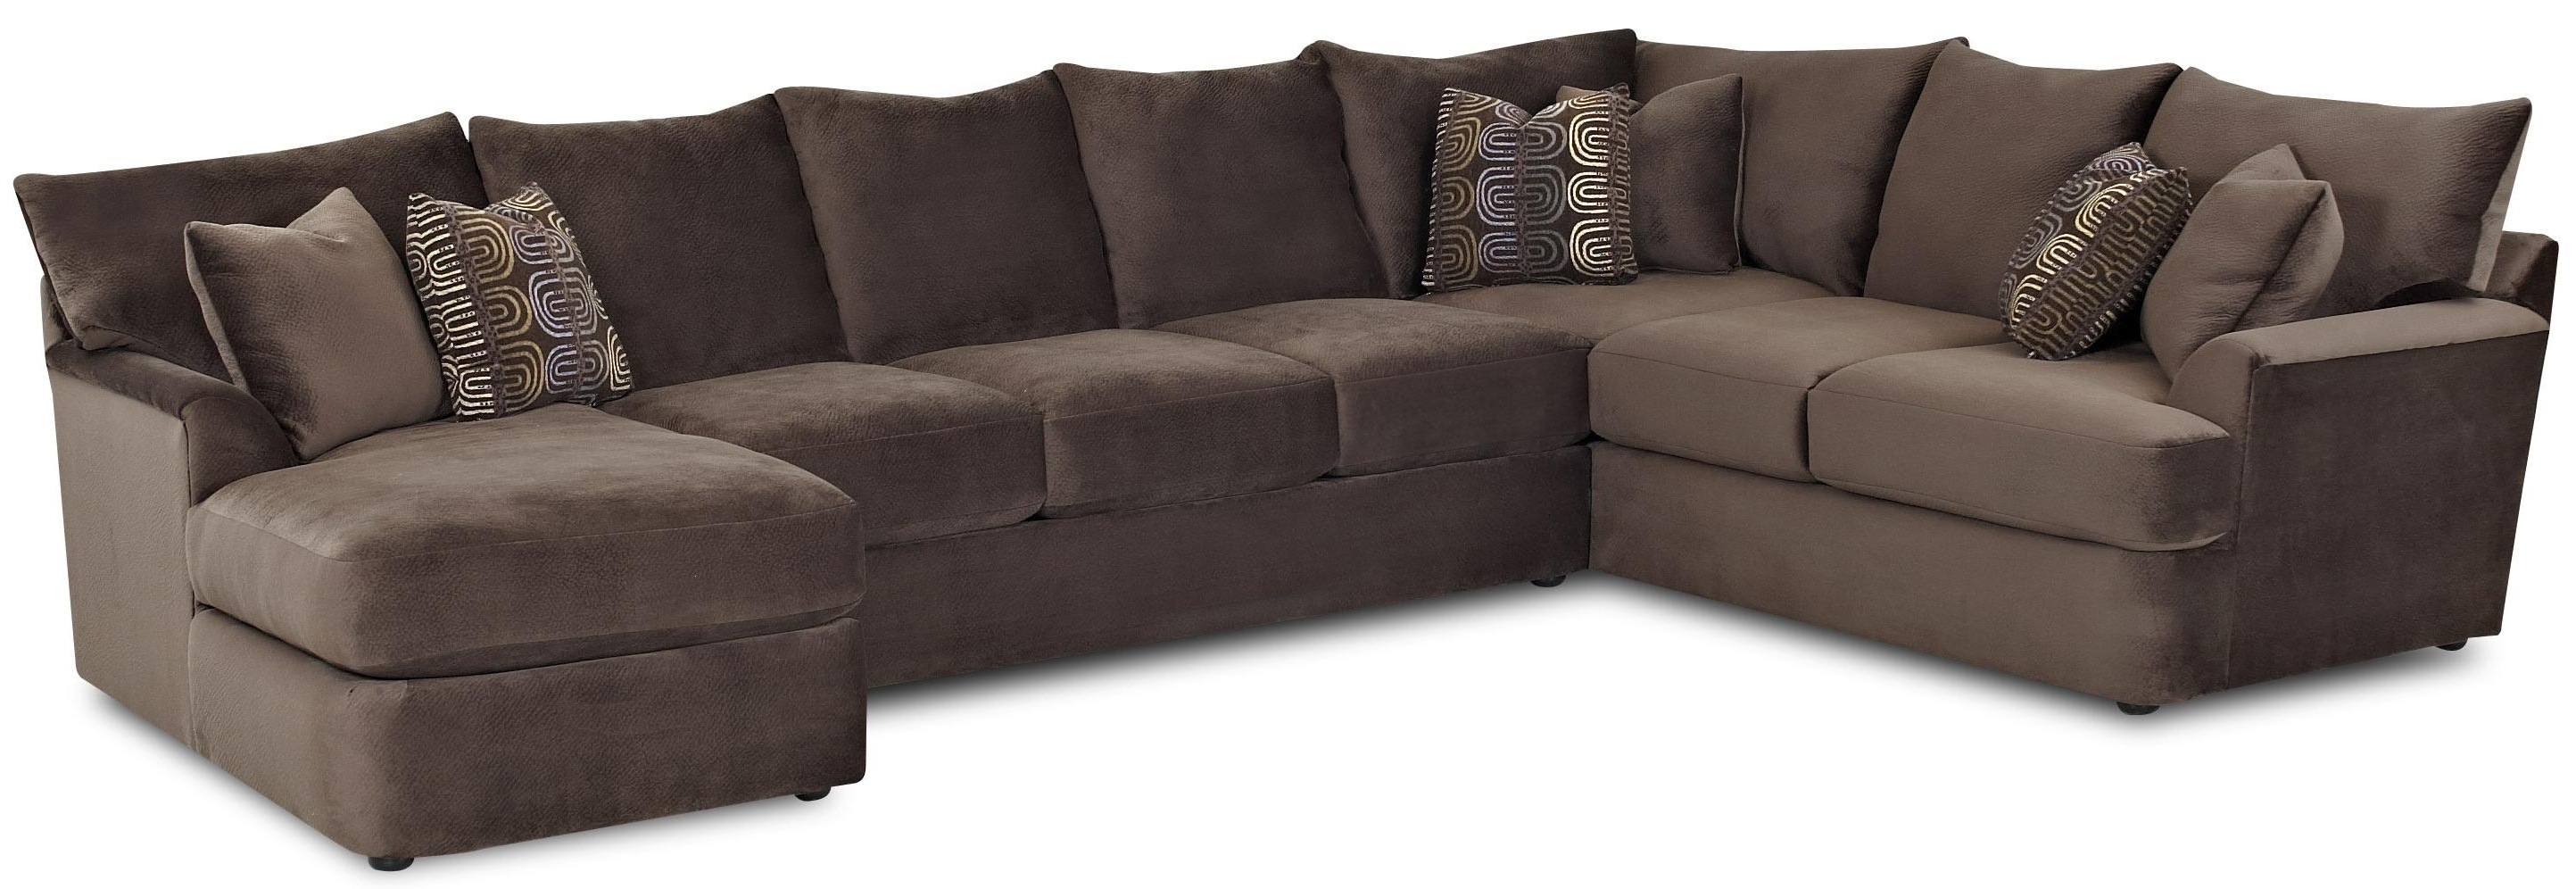 L Shaped Sectional Sofas Pertaining To Most Recent Klaussner Findley L Shaped Sectional Sofa With Right Chaise – Ahfa (View 5 of 15)